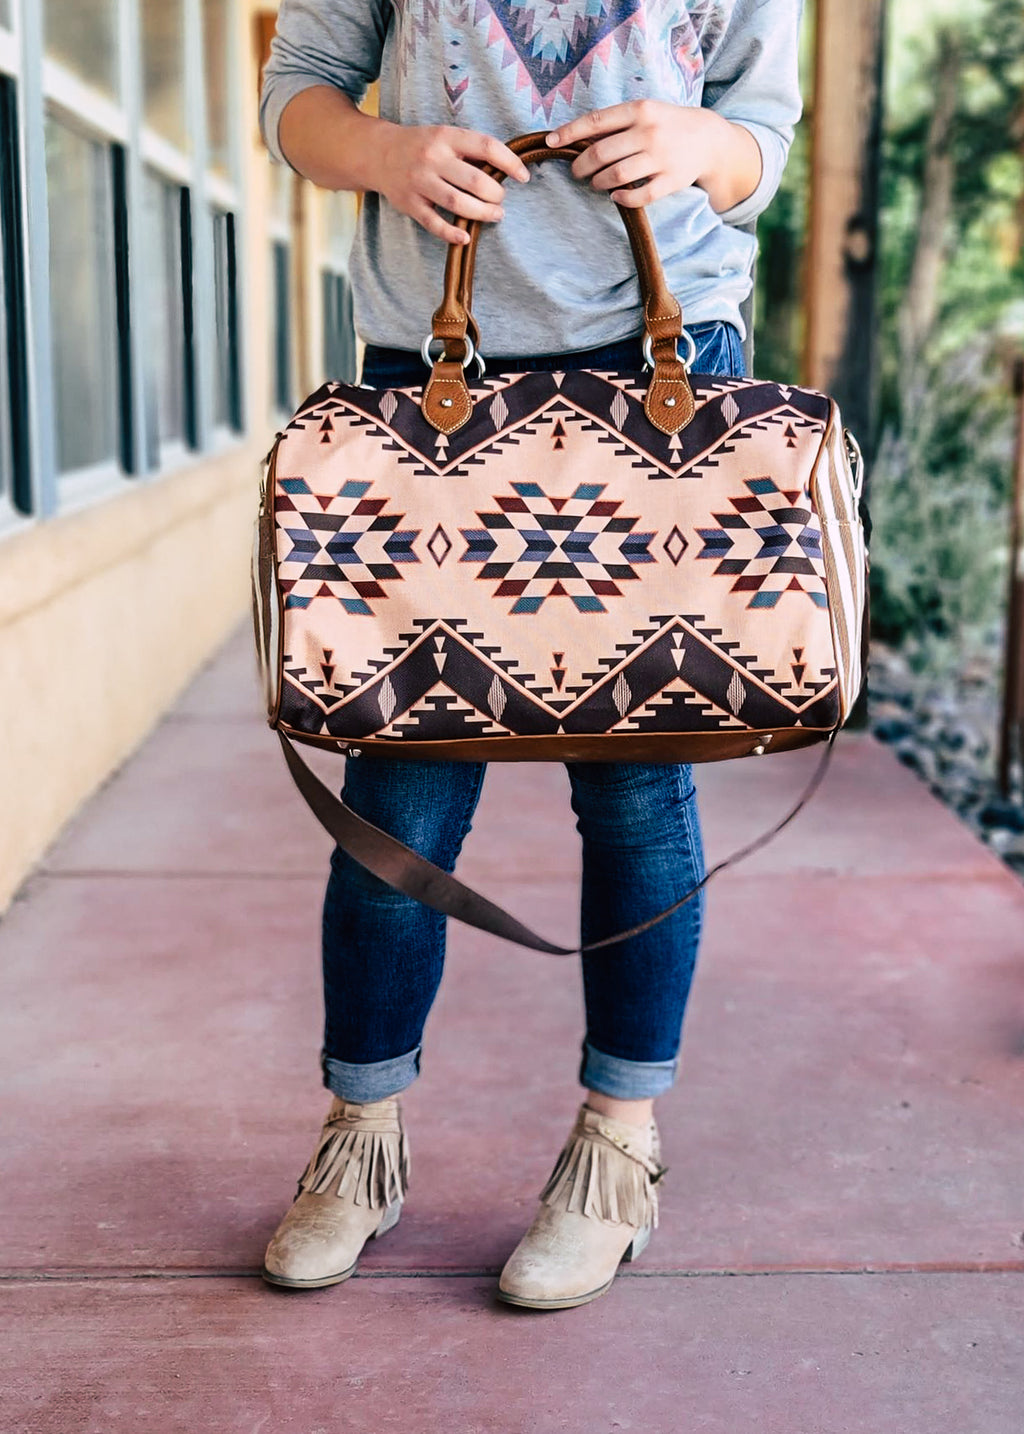 Brown and Ivory Weekender Bag with Warm Multi Color Aztec Print, with 2 Straps and a Crossbody Strap, on Blonde Model, Taken Outside in Natural Lighting